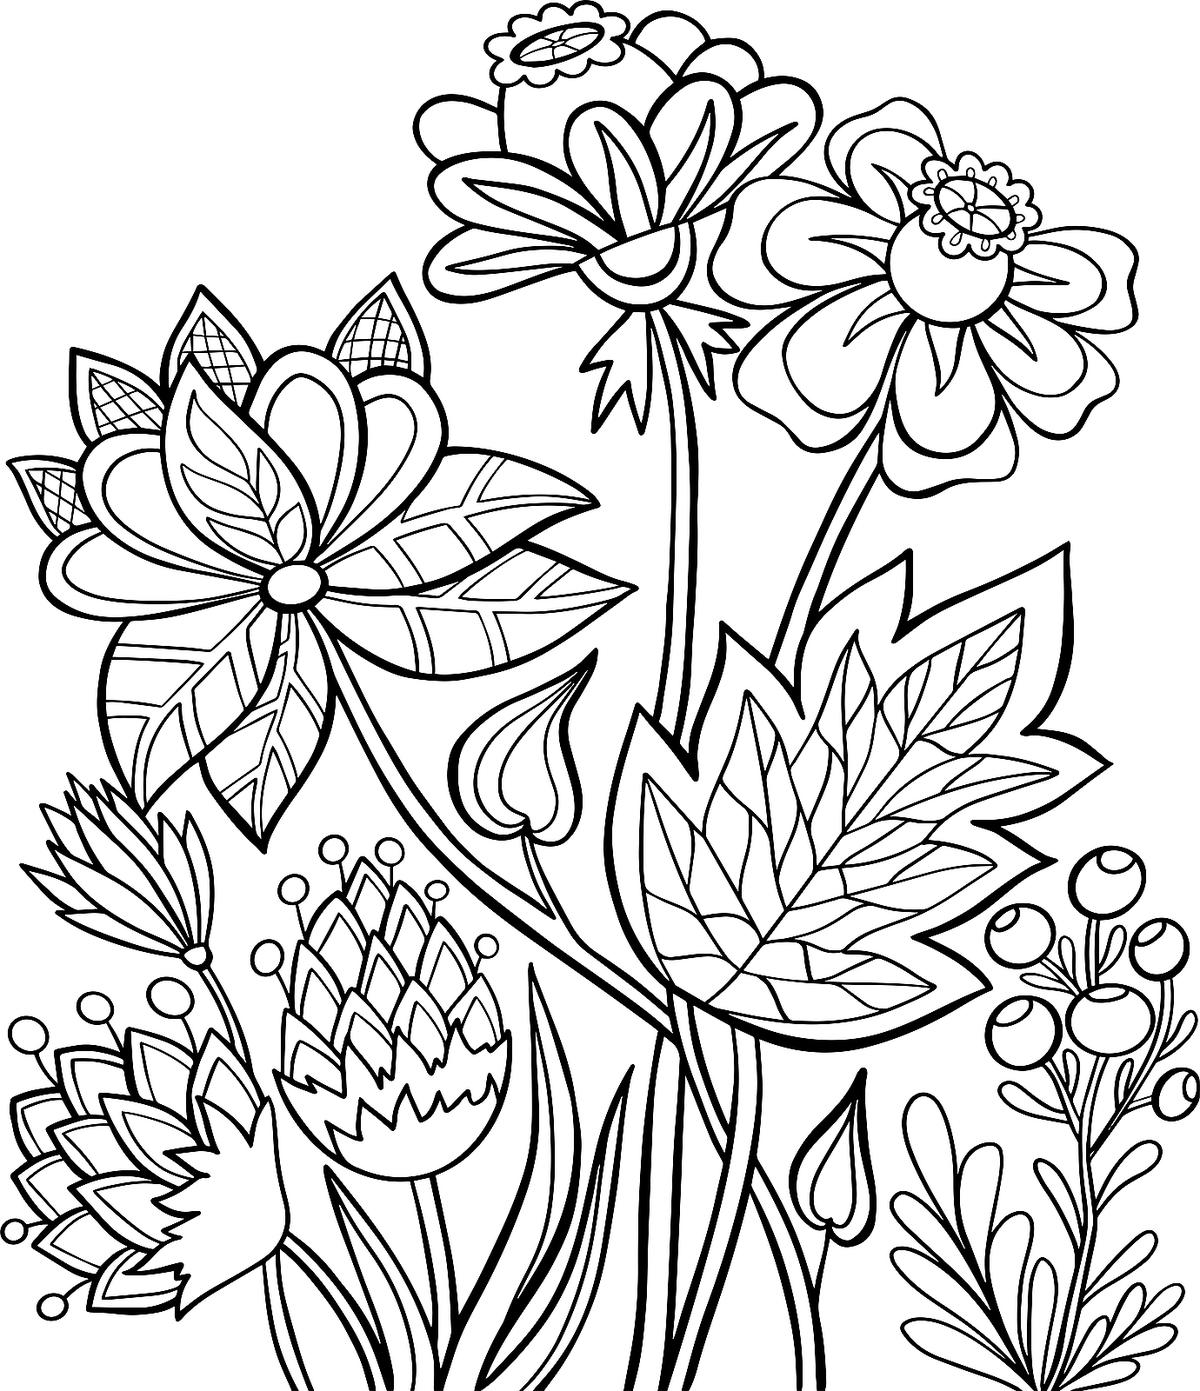 coloring flower flower coloring pages for preschoolers at getdrawings coloring flower